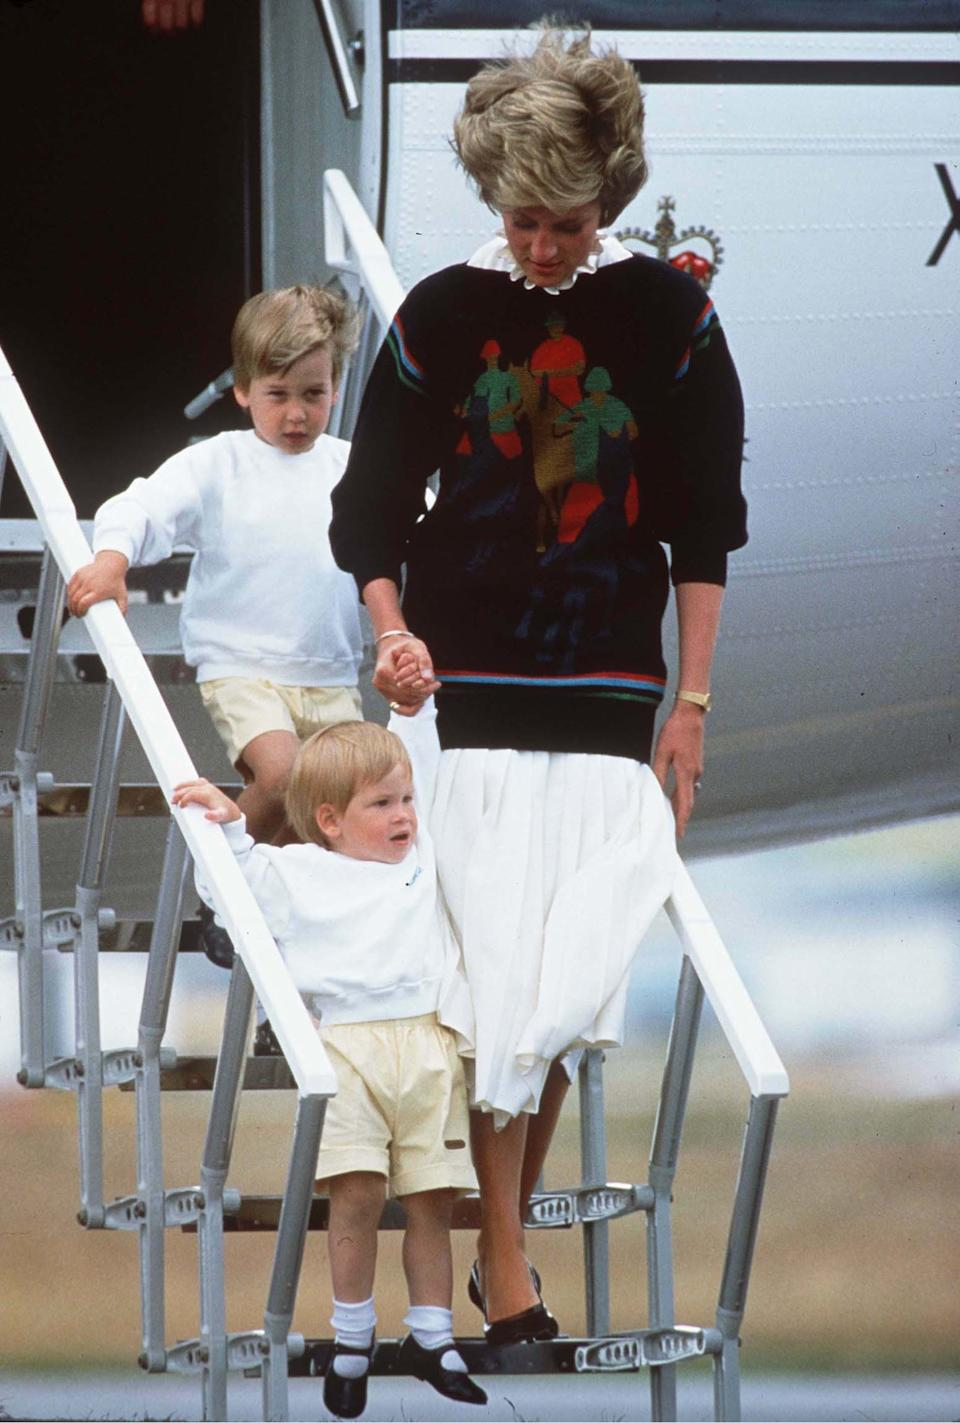 The Princess of Wales with her young sons Prince William and Harry arriving at Aberdeen airport for their holiday in Scotland in August 1986.  Photo.  Anwar Hussein